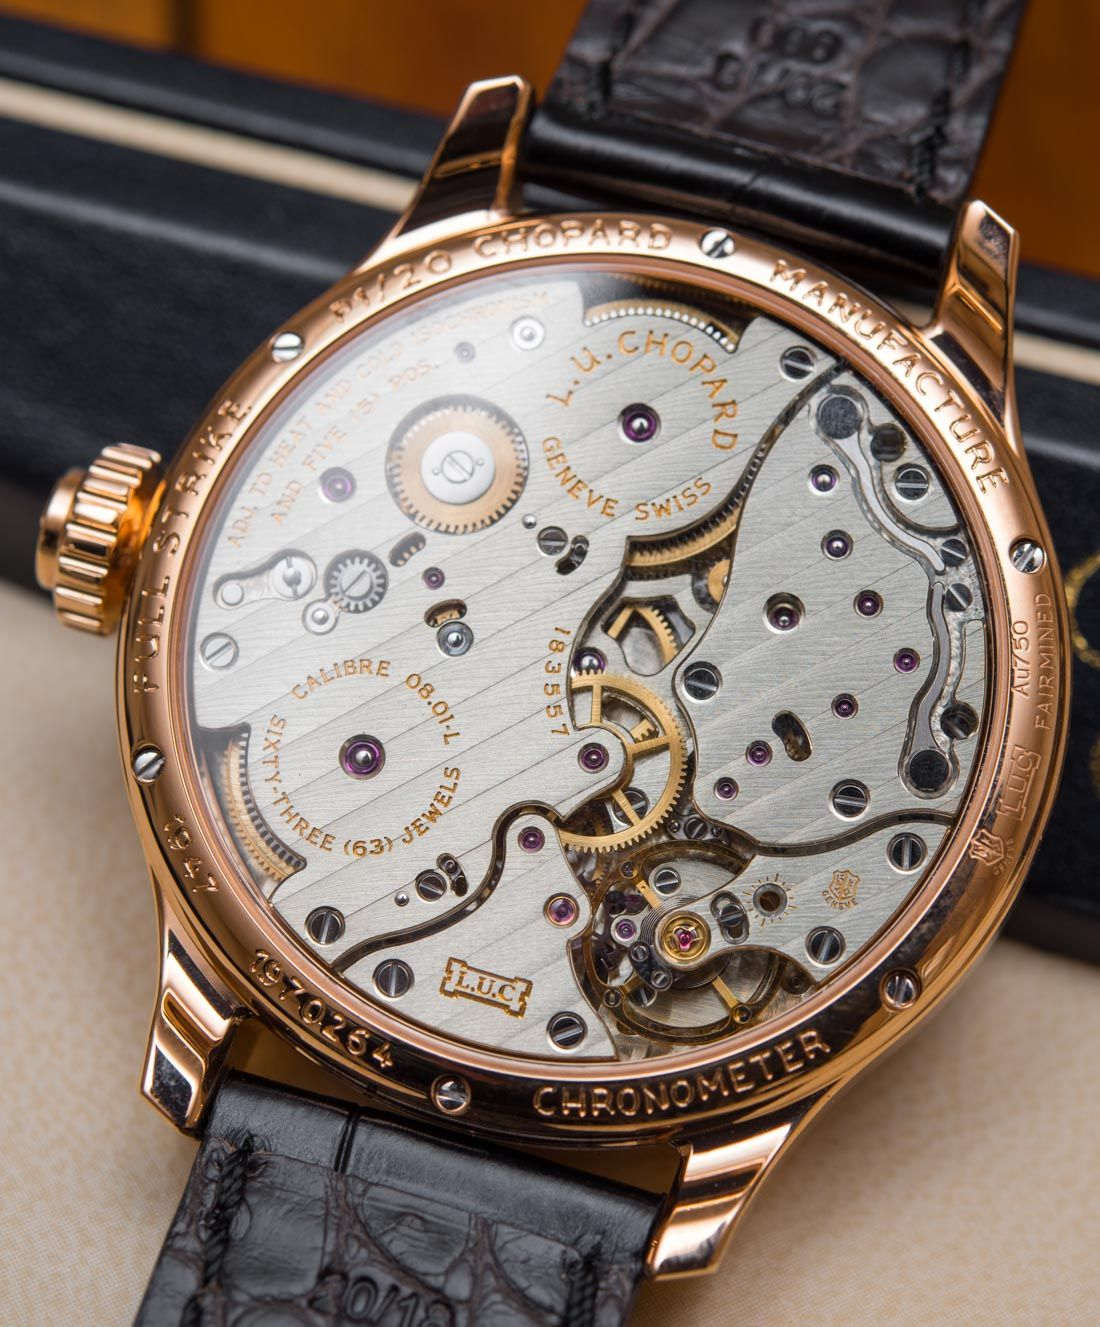 Chopard L.U.C Full Strike Minute Repeater Watch With Sapphire Gongs Hands-On Hands-On